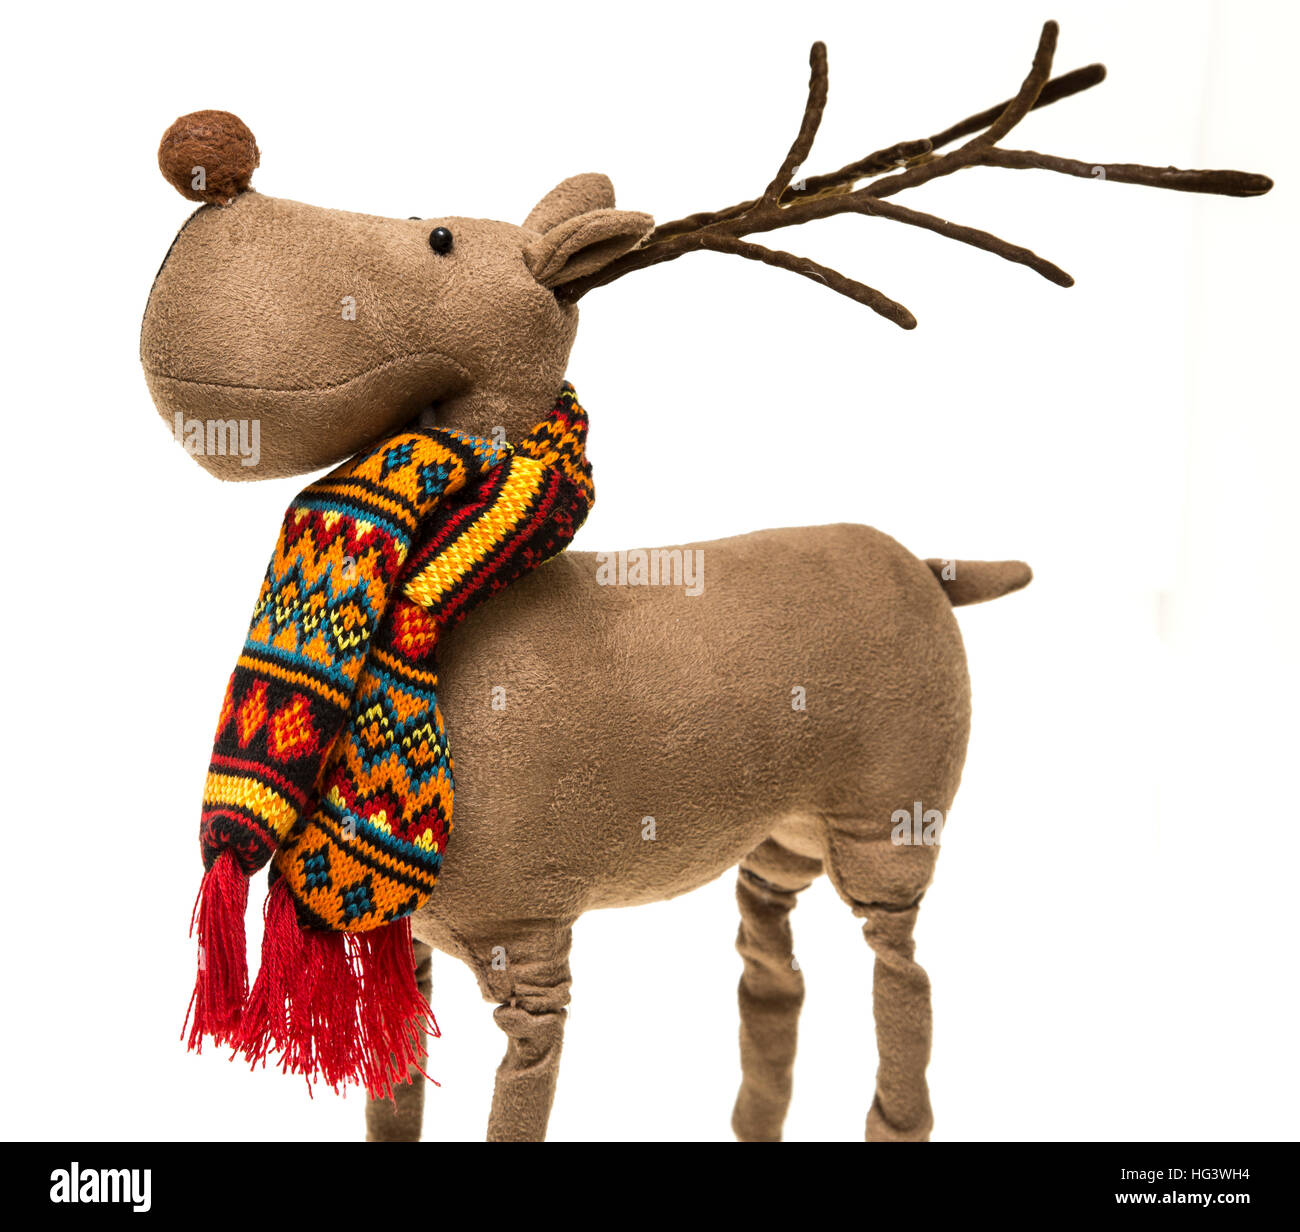 a christmas decoration of rudolph the red nosed reindeer wearing a colourful scarf on - Rudolph The Red Nosed Reindeer Christmas Decorations